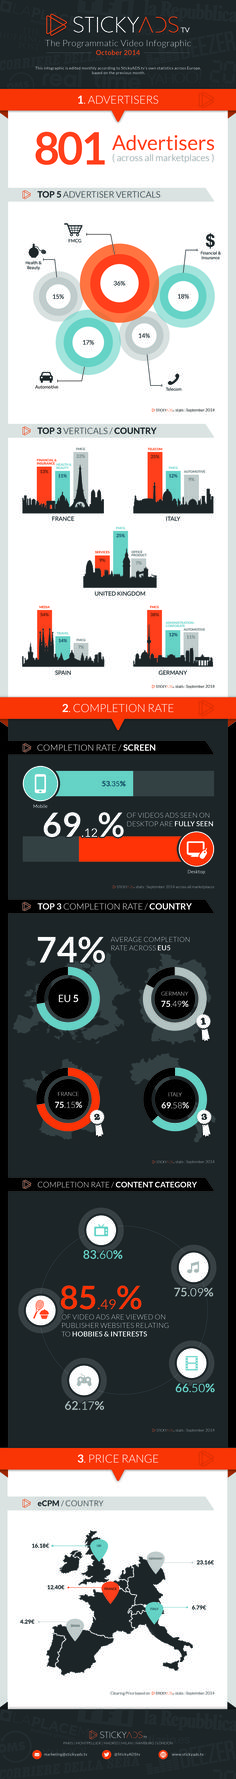 Infographic on programmatic video by stickyAds.tv